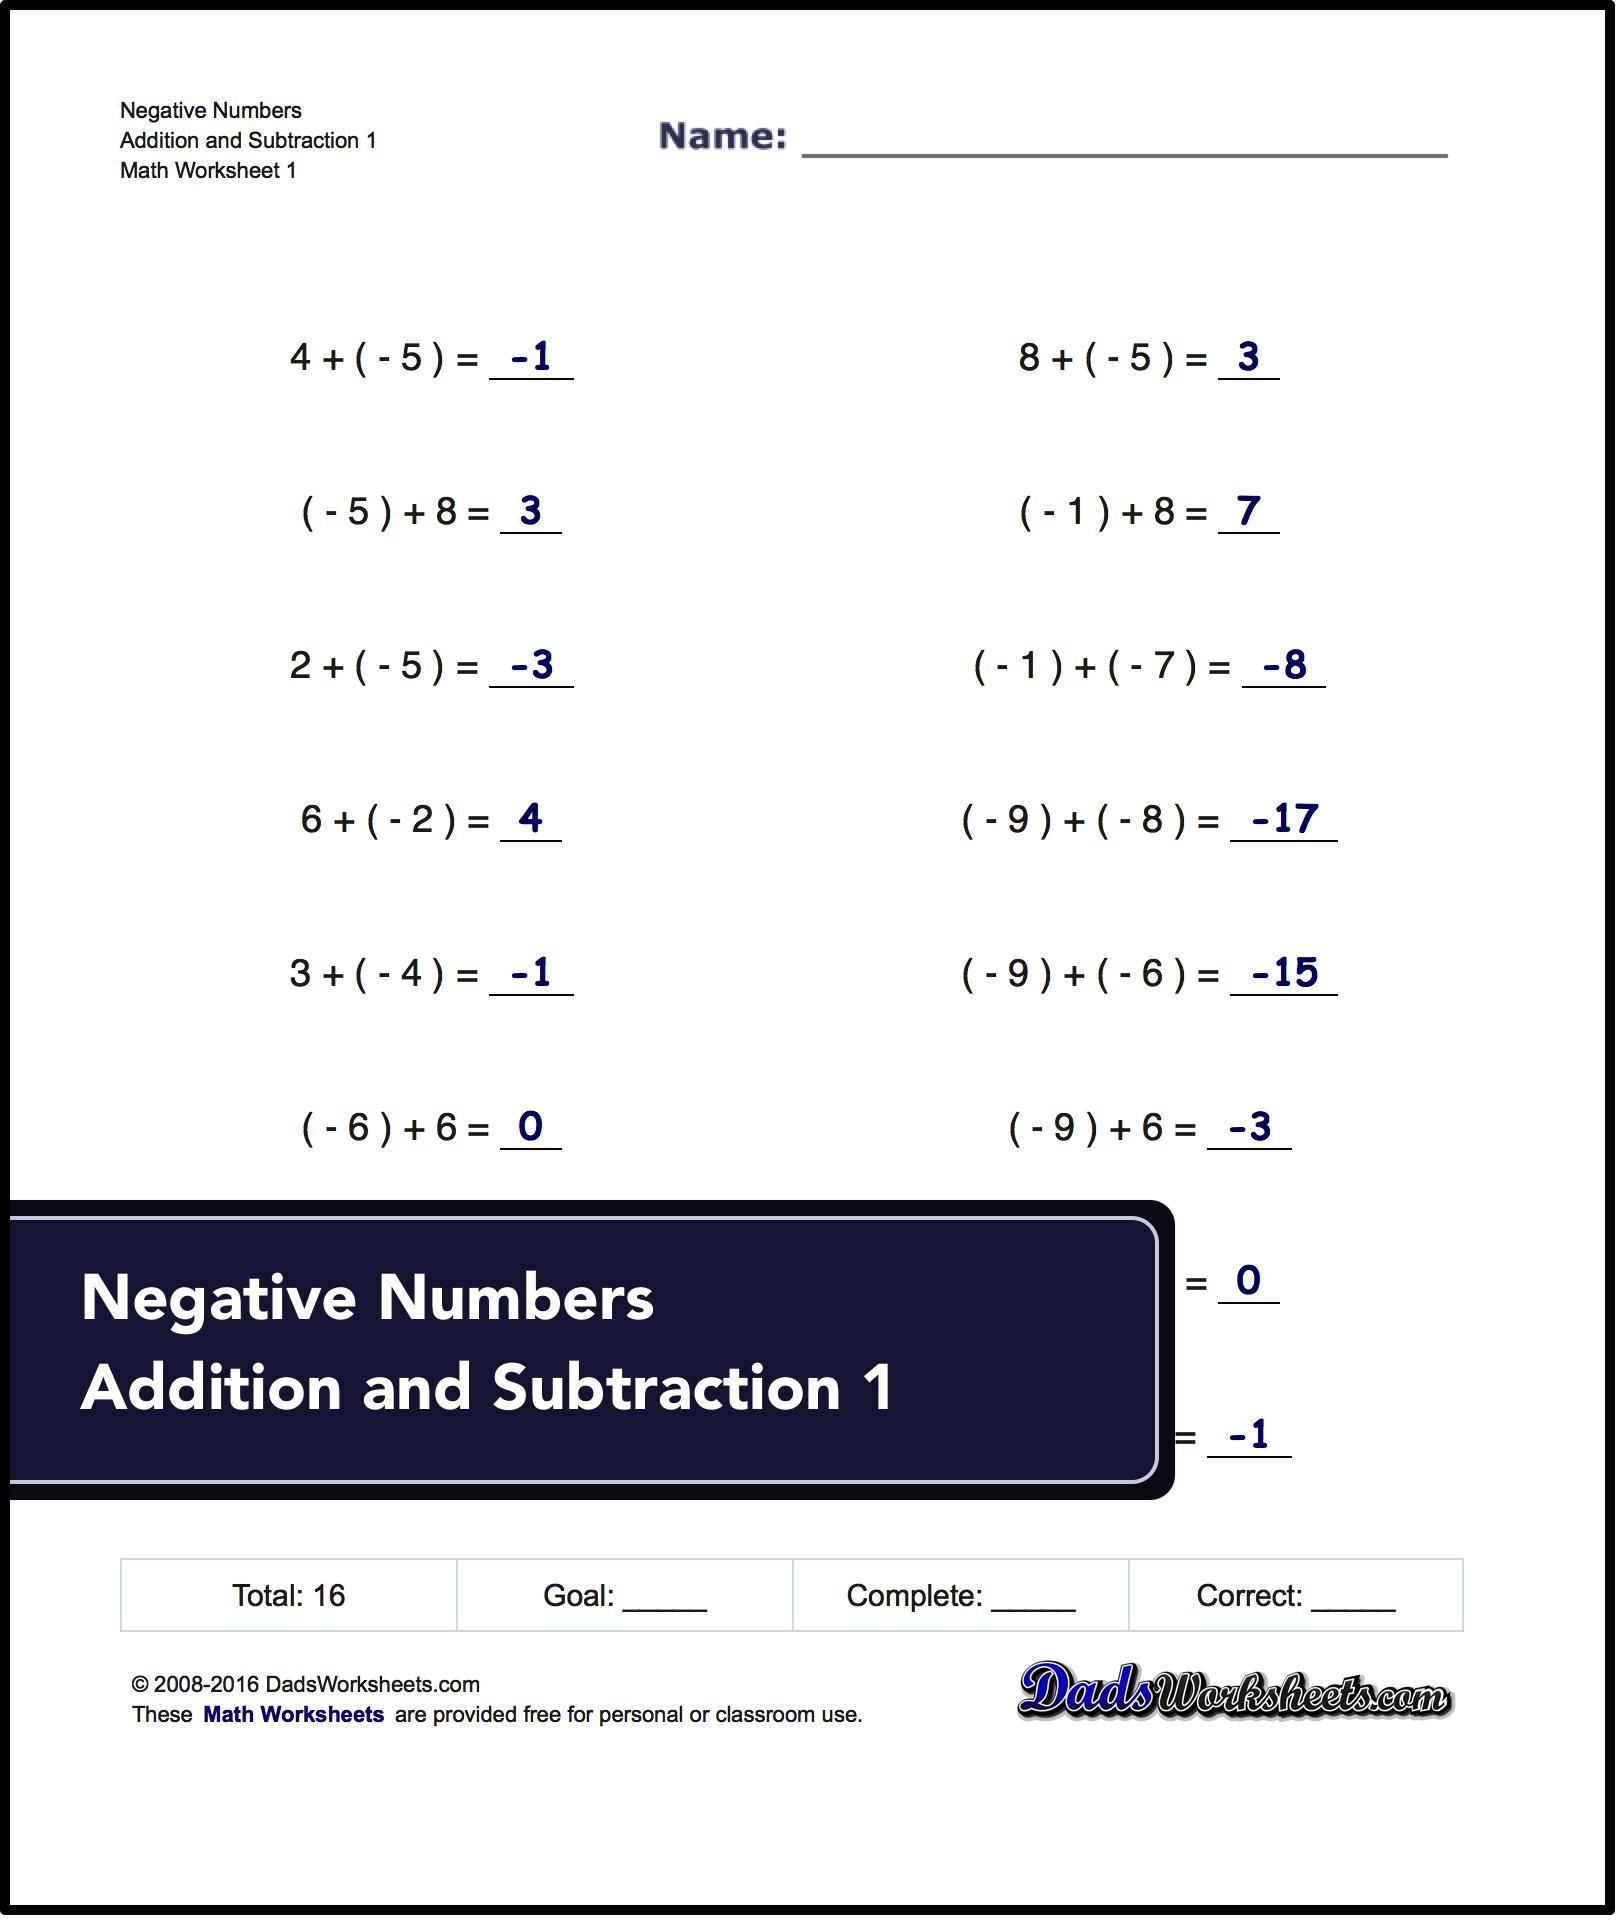 worksheets with simple problems that introduce negative numbers and  worksheets with simple problems that introduce negative numbers and their  order of operations for addition and subtraction